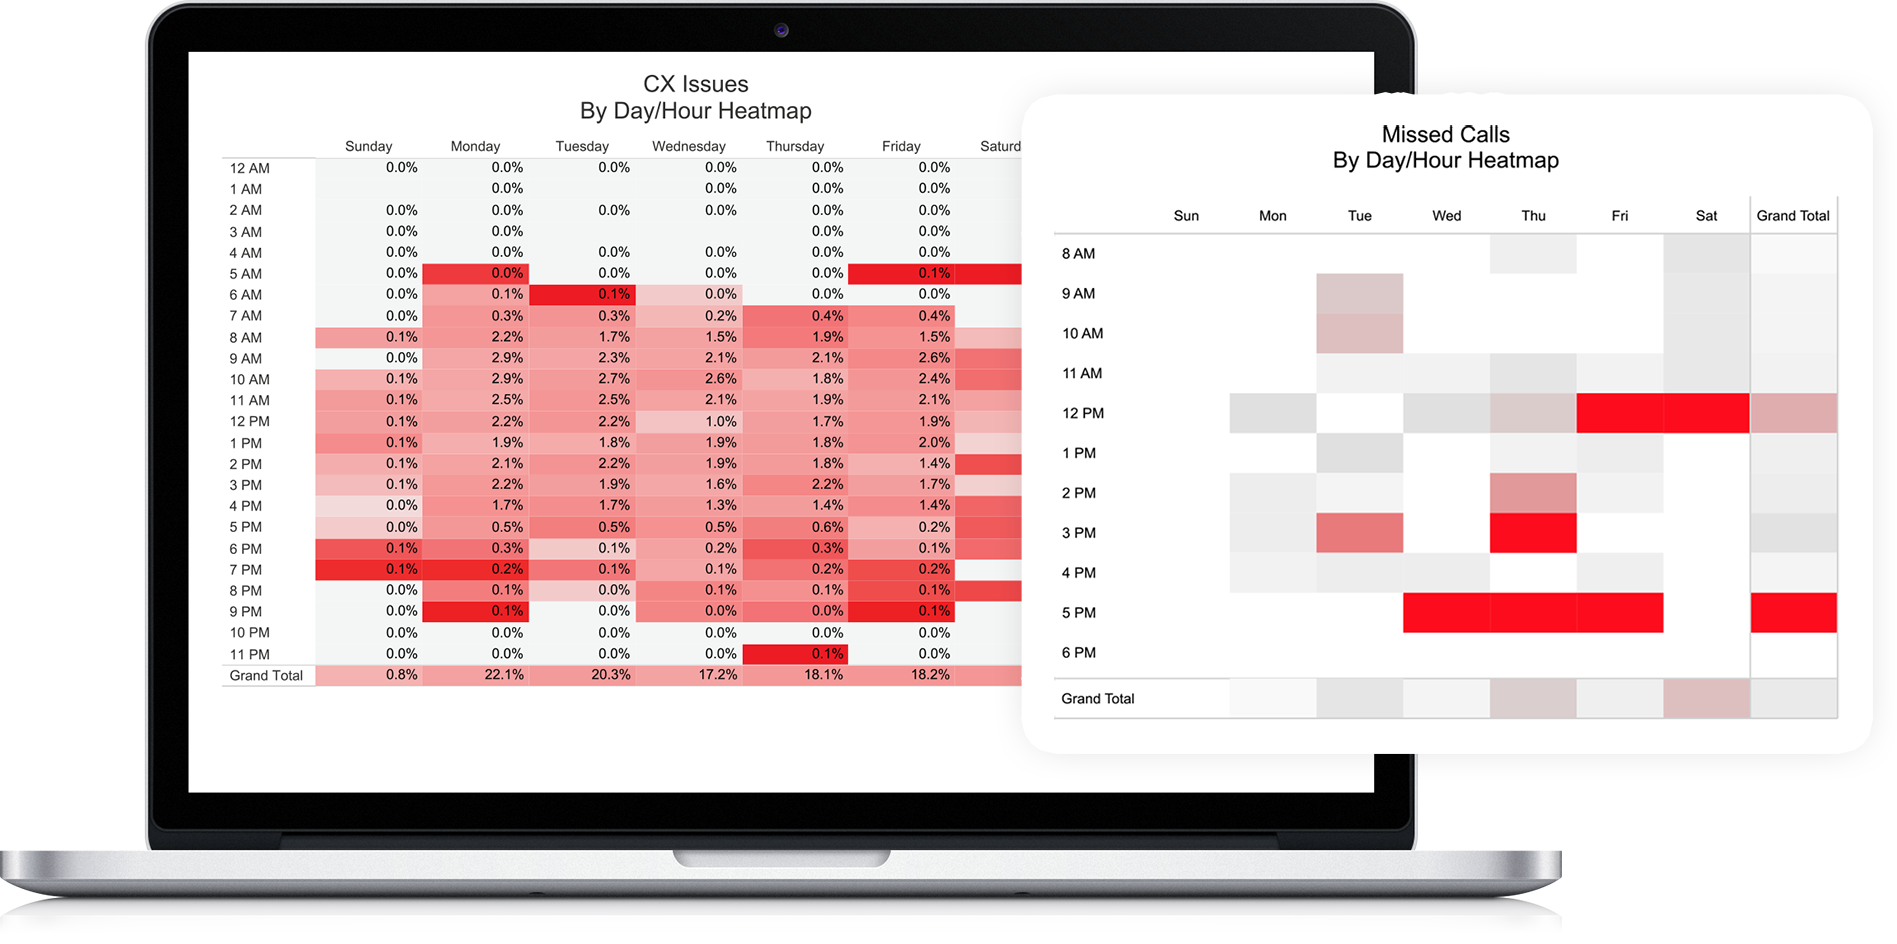 call analytics report showing CX issues by time of day